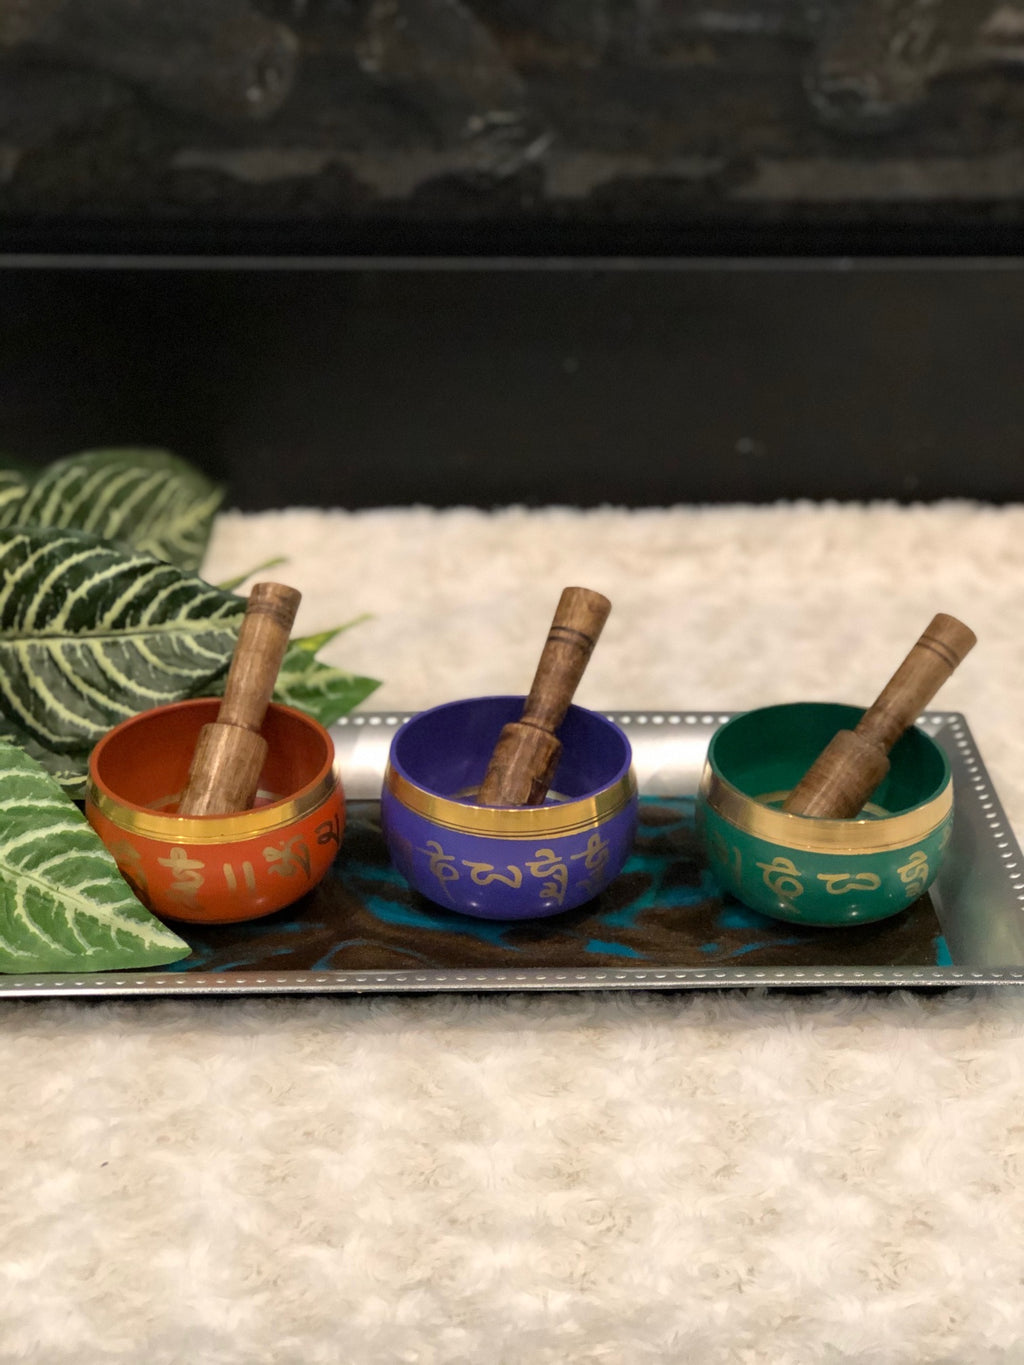 Singing Bowl (various colors)